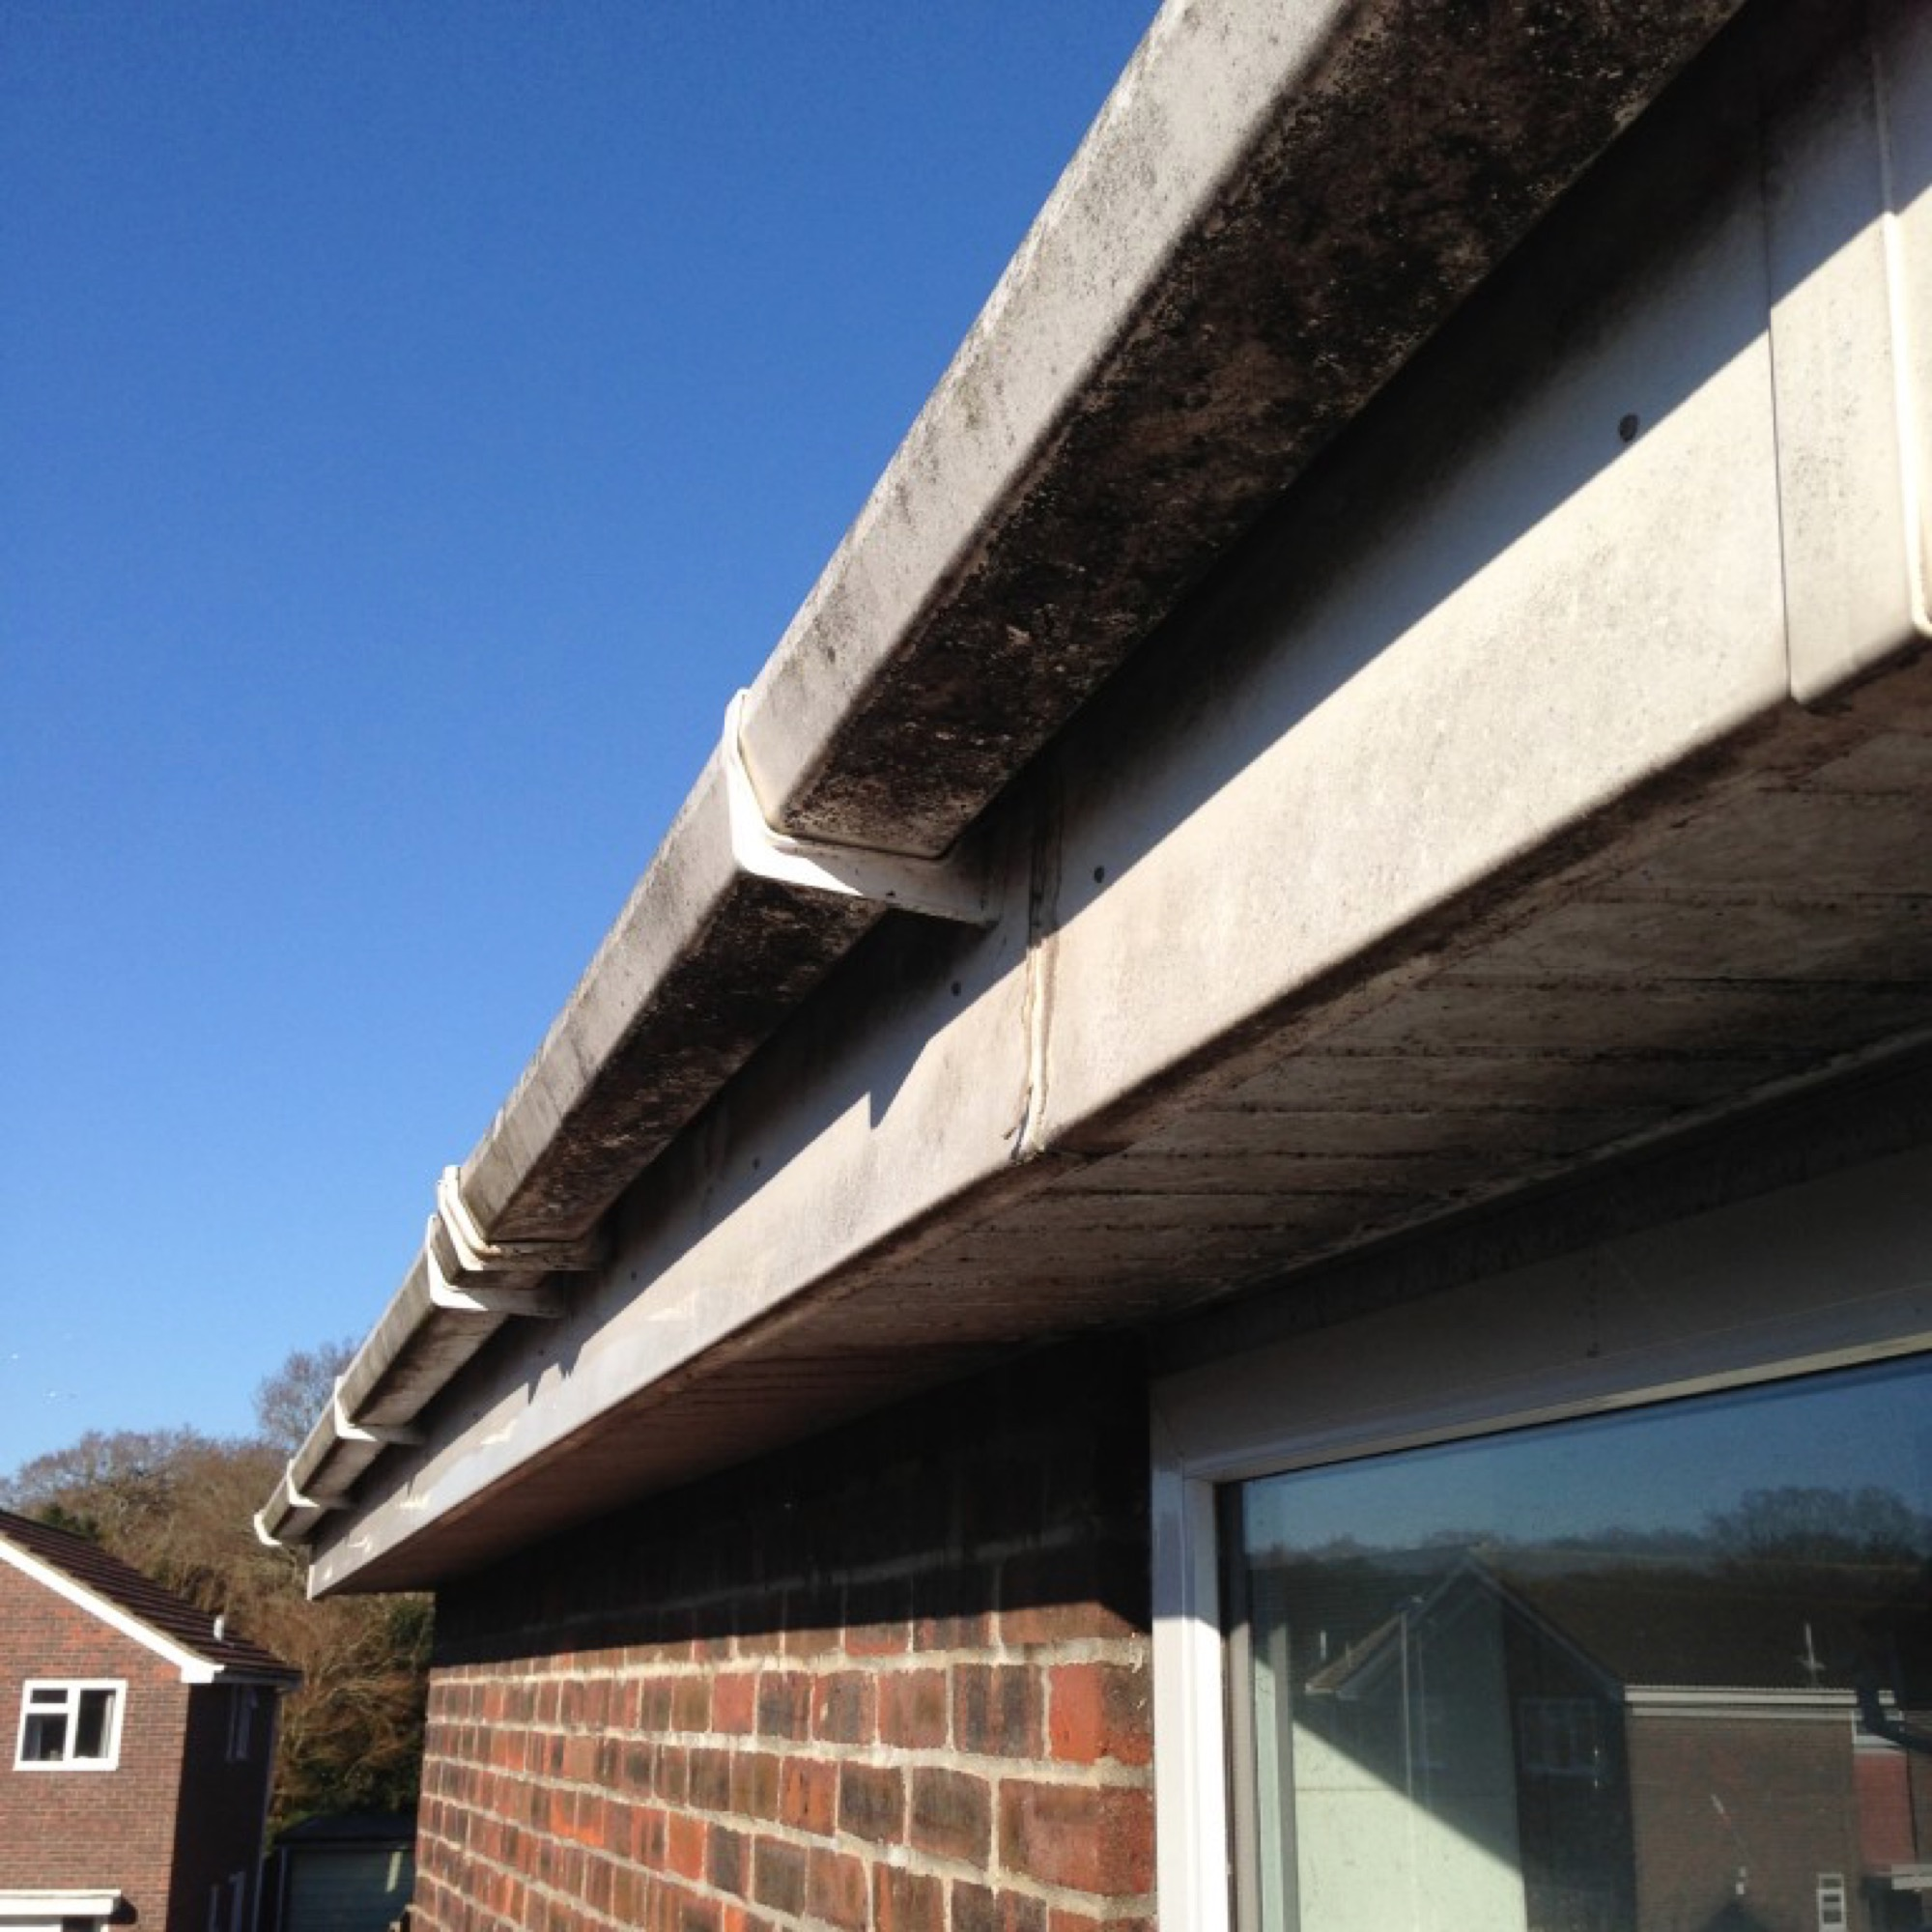 Gutter Cleaning Tmco The Maintenance Company